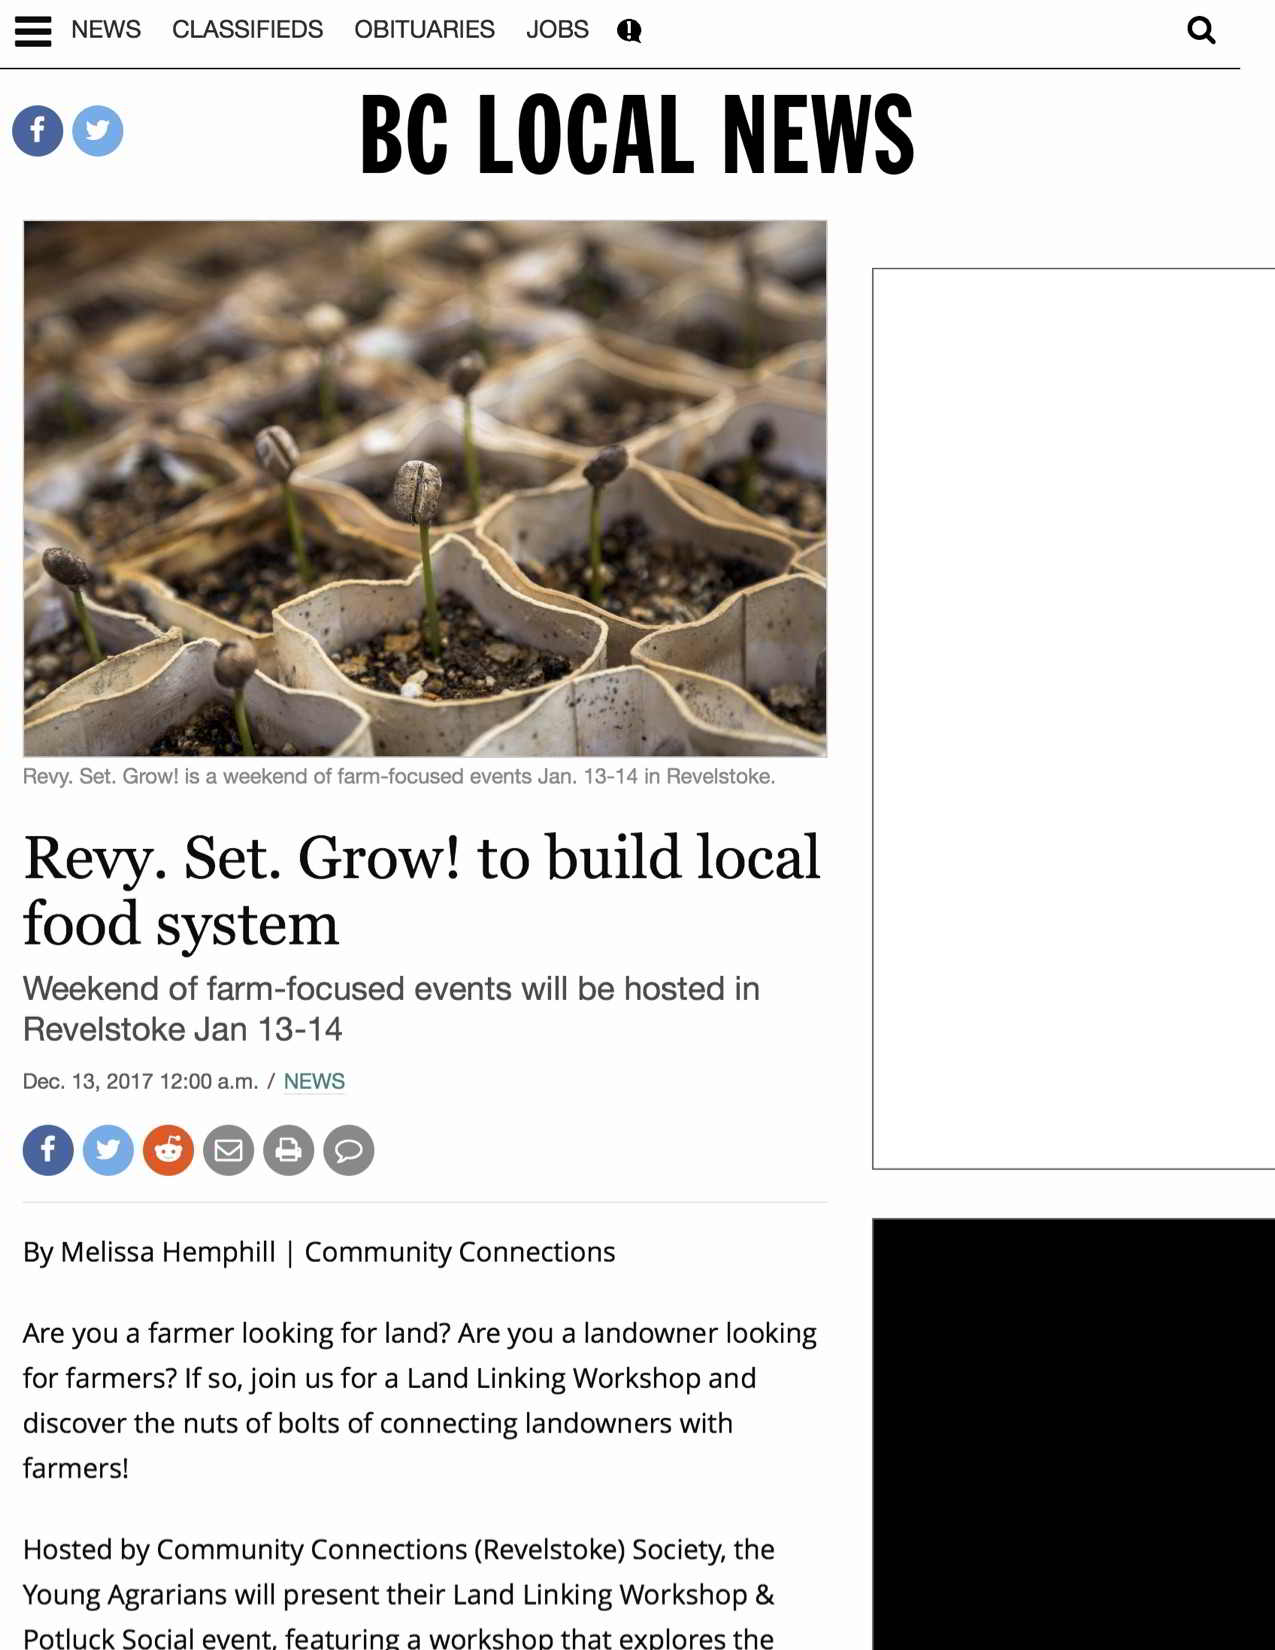 Revy. Set. Grow! to build local food system - BC Local News (2018-01-08 12-54-08)